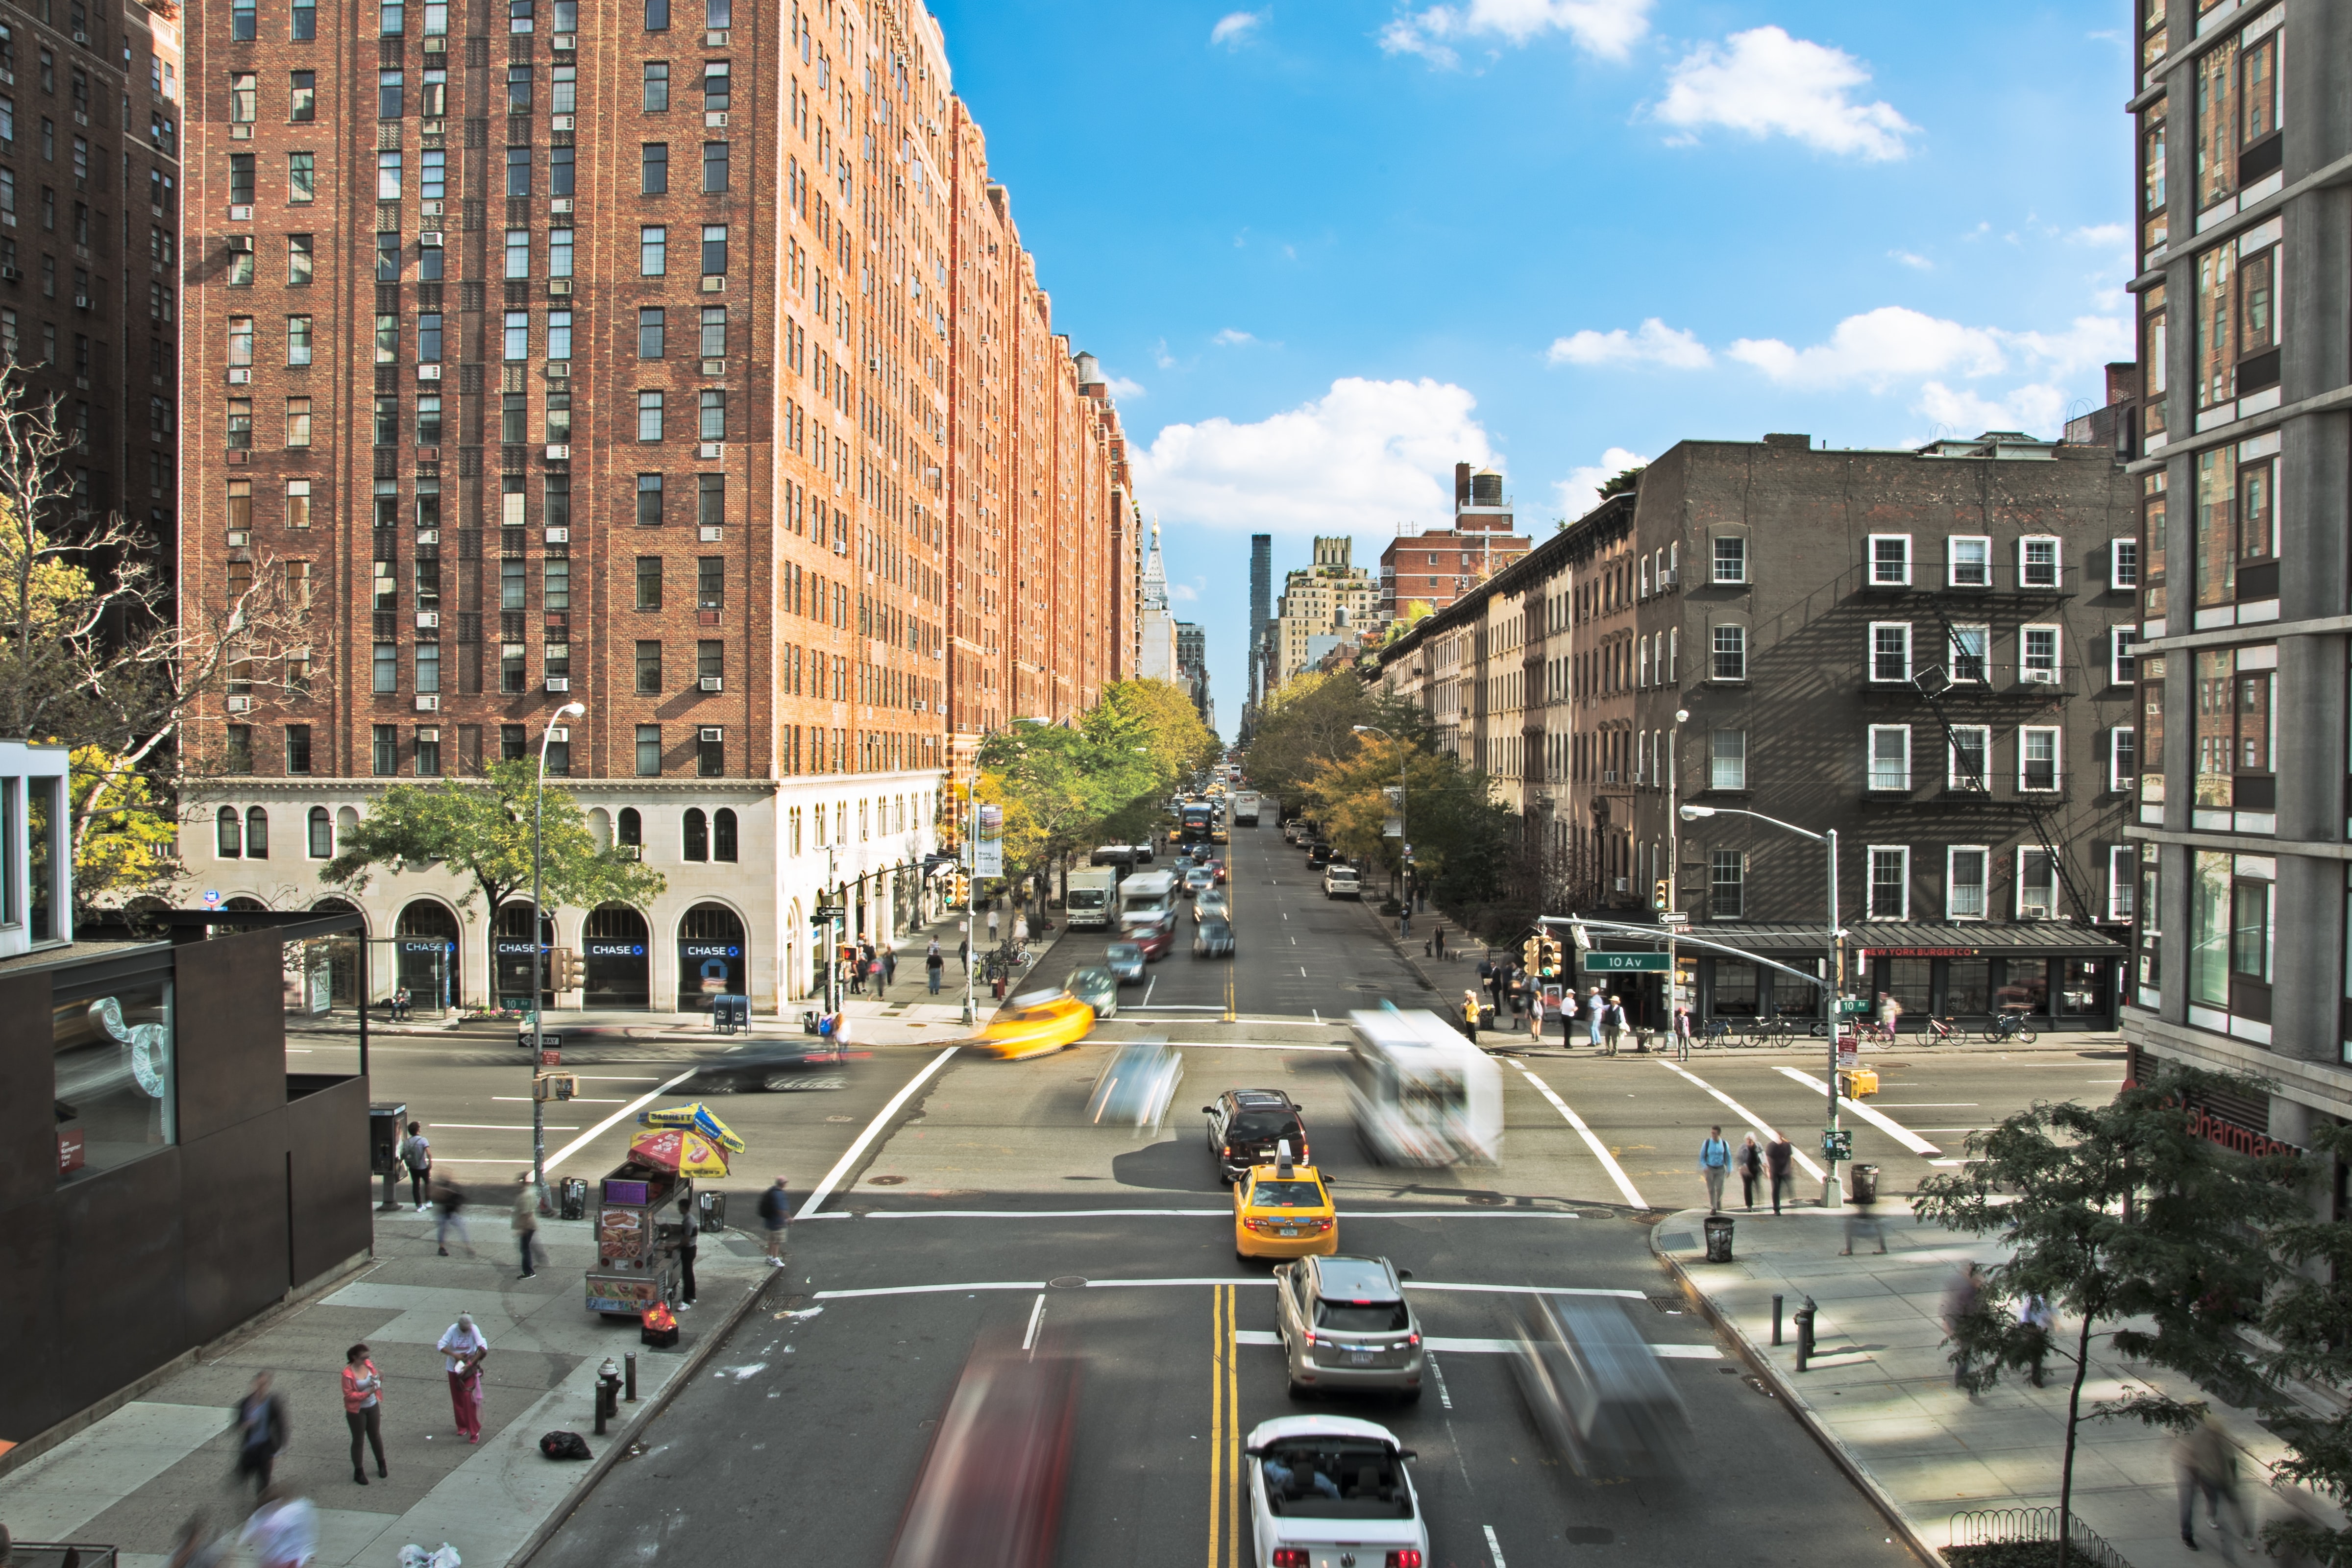 New York City intersection with taxis, cars, and buses driving and people walking